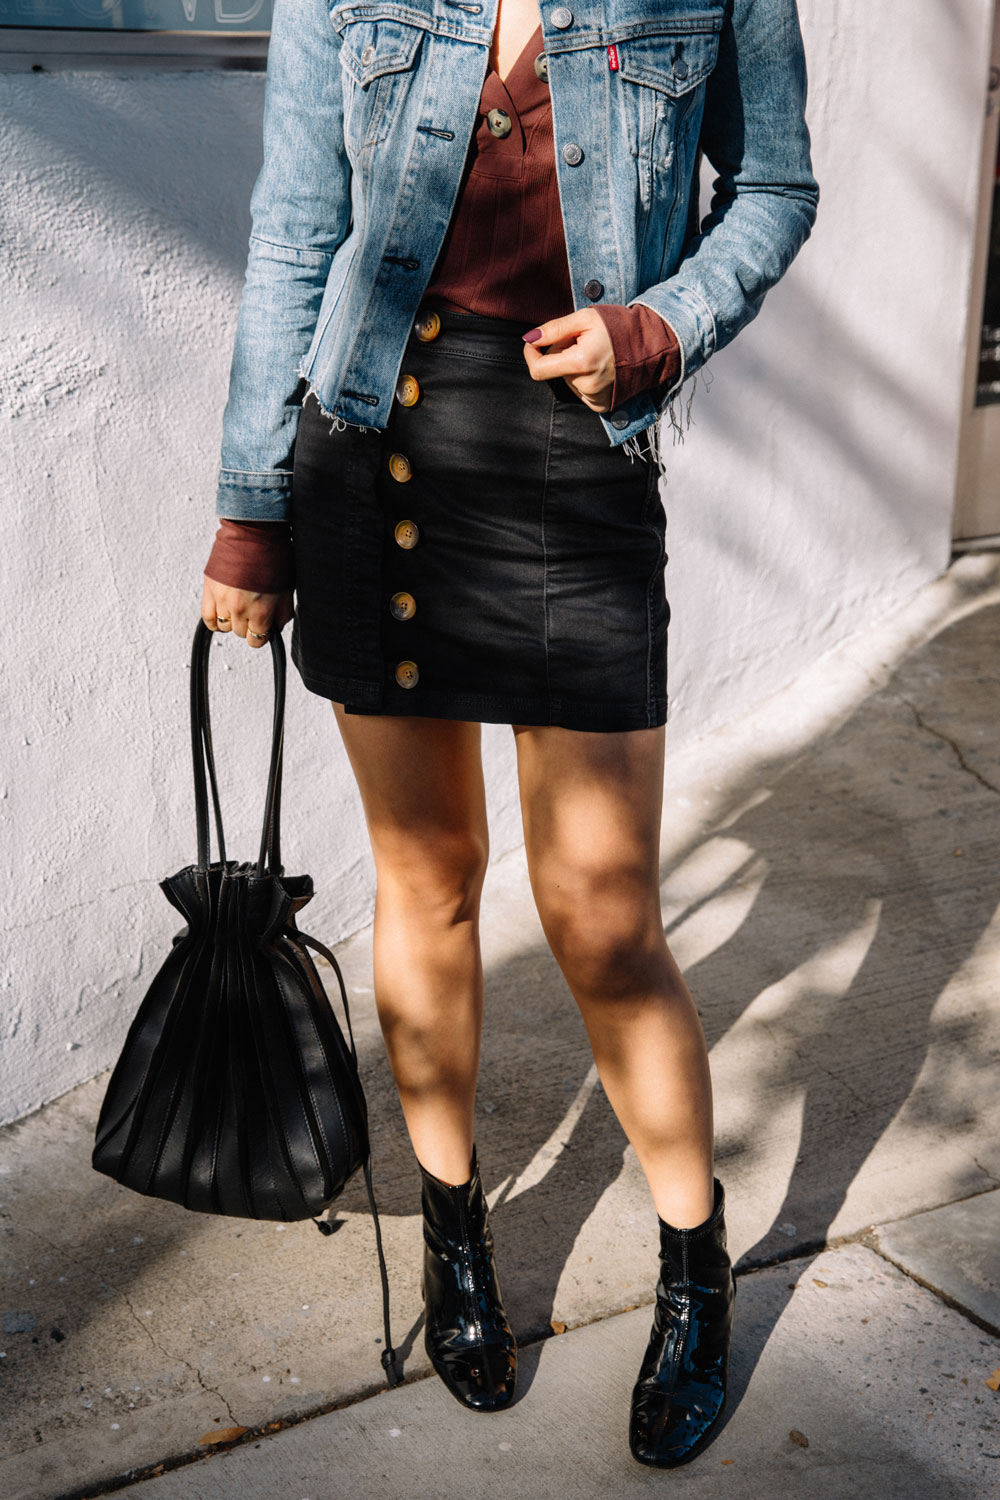 LOVE OR MONEY by Emily Tong wearing Free People button top and button skirt levis jacket and patent boots